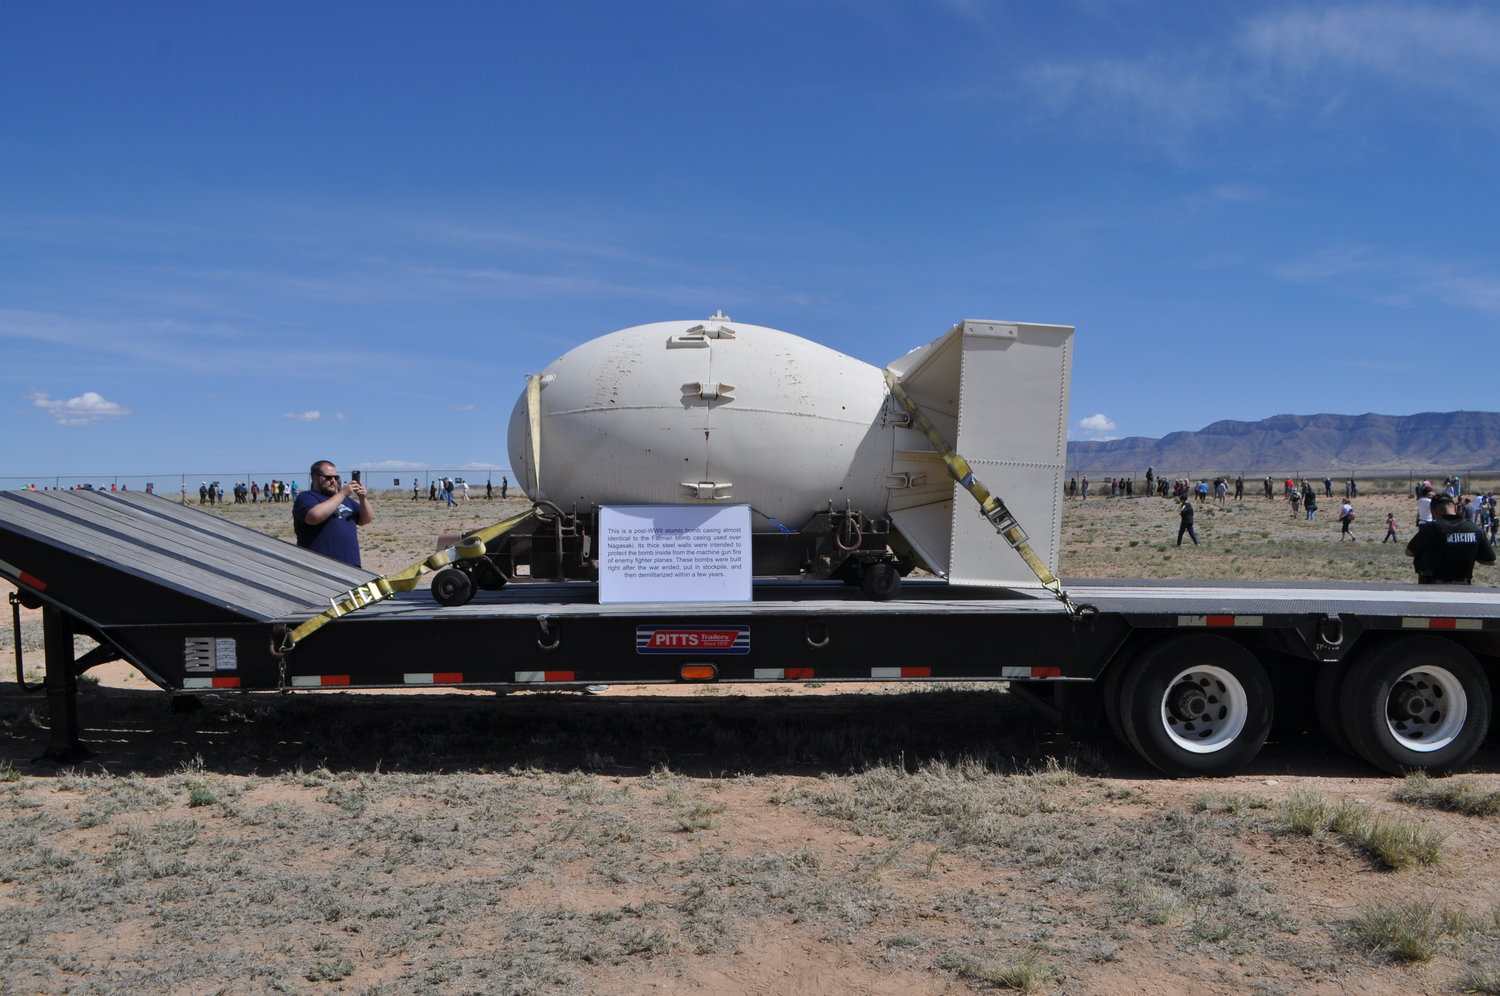 One of the items on display at the White Sands Missile Range Trinity Site is a post-World War II atomic bomb casing almost identical to the Fatman bomb casing used over Nagasaki, Japan.